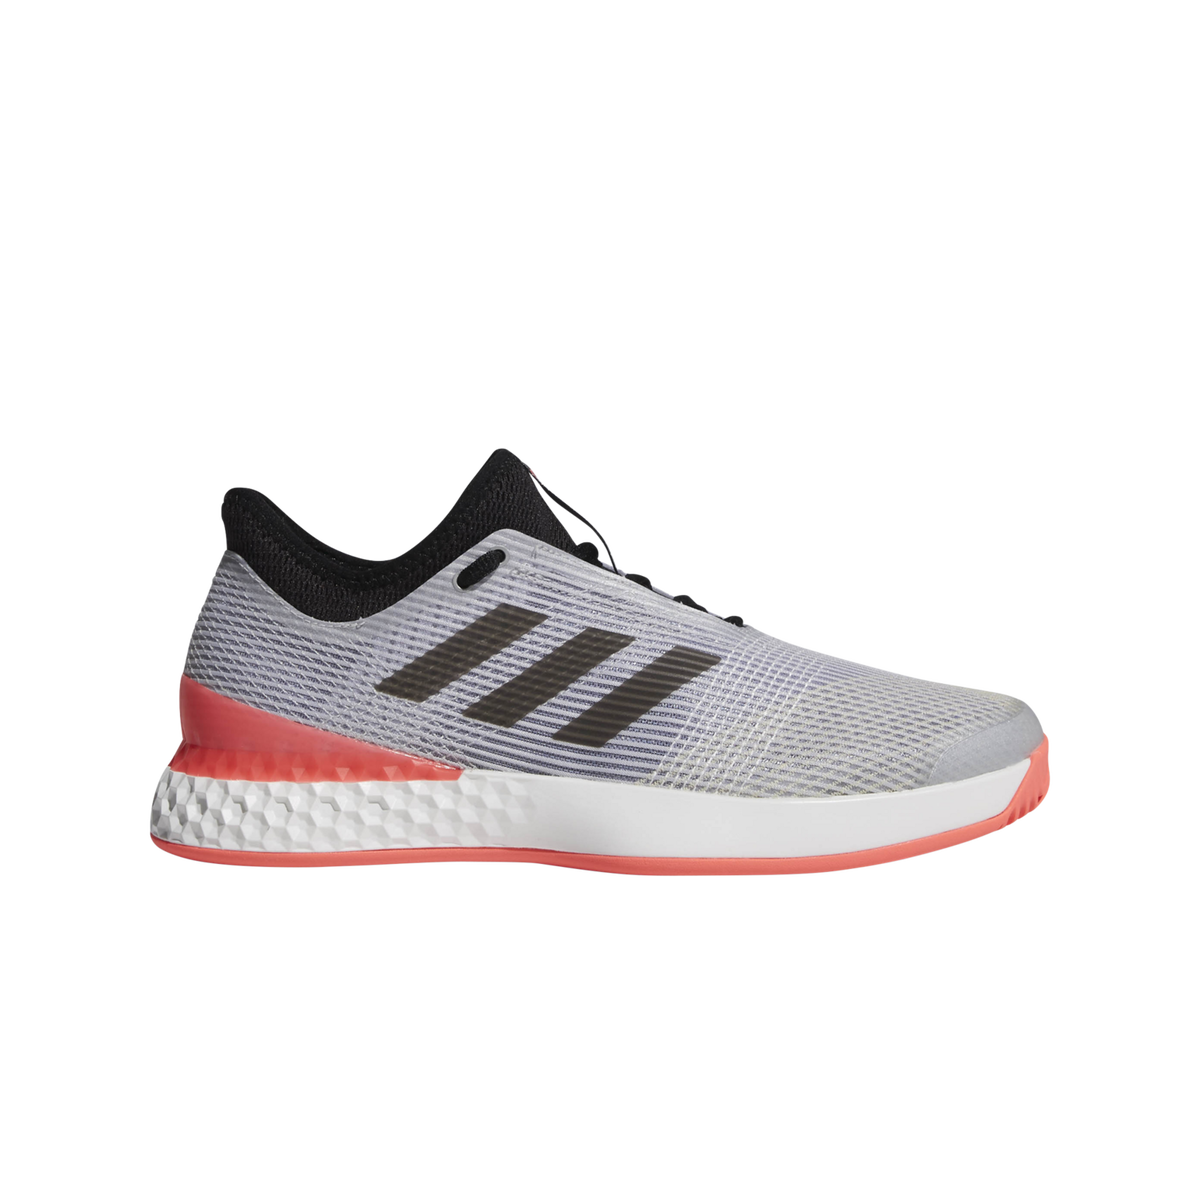 adidas adizero Ubersonic 3.0 Men s Tennis Shoe - Grey Red dc18d1607